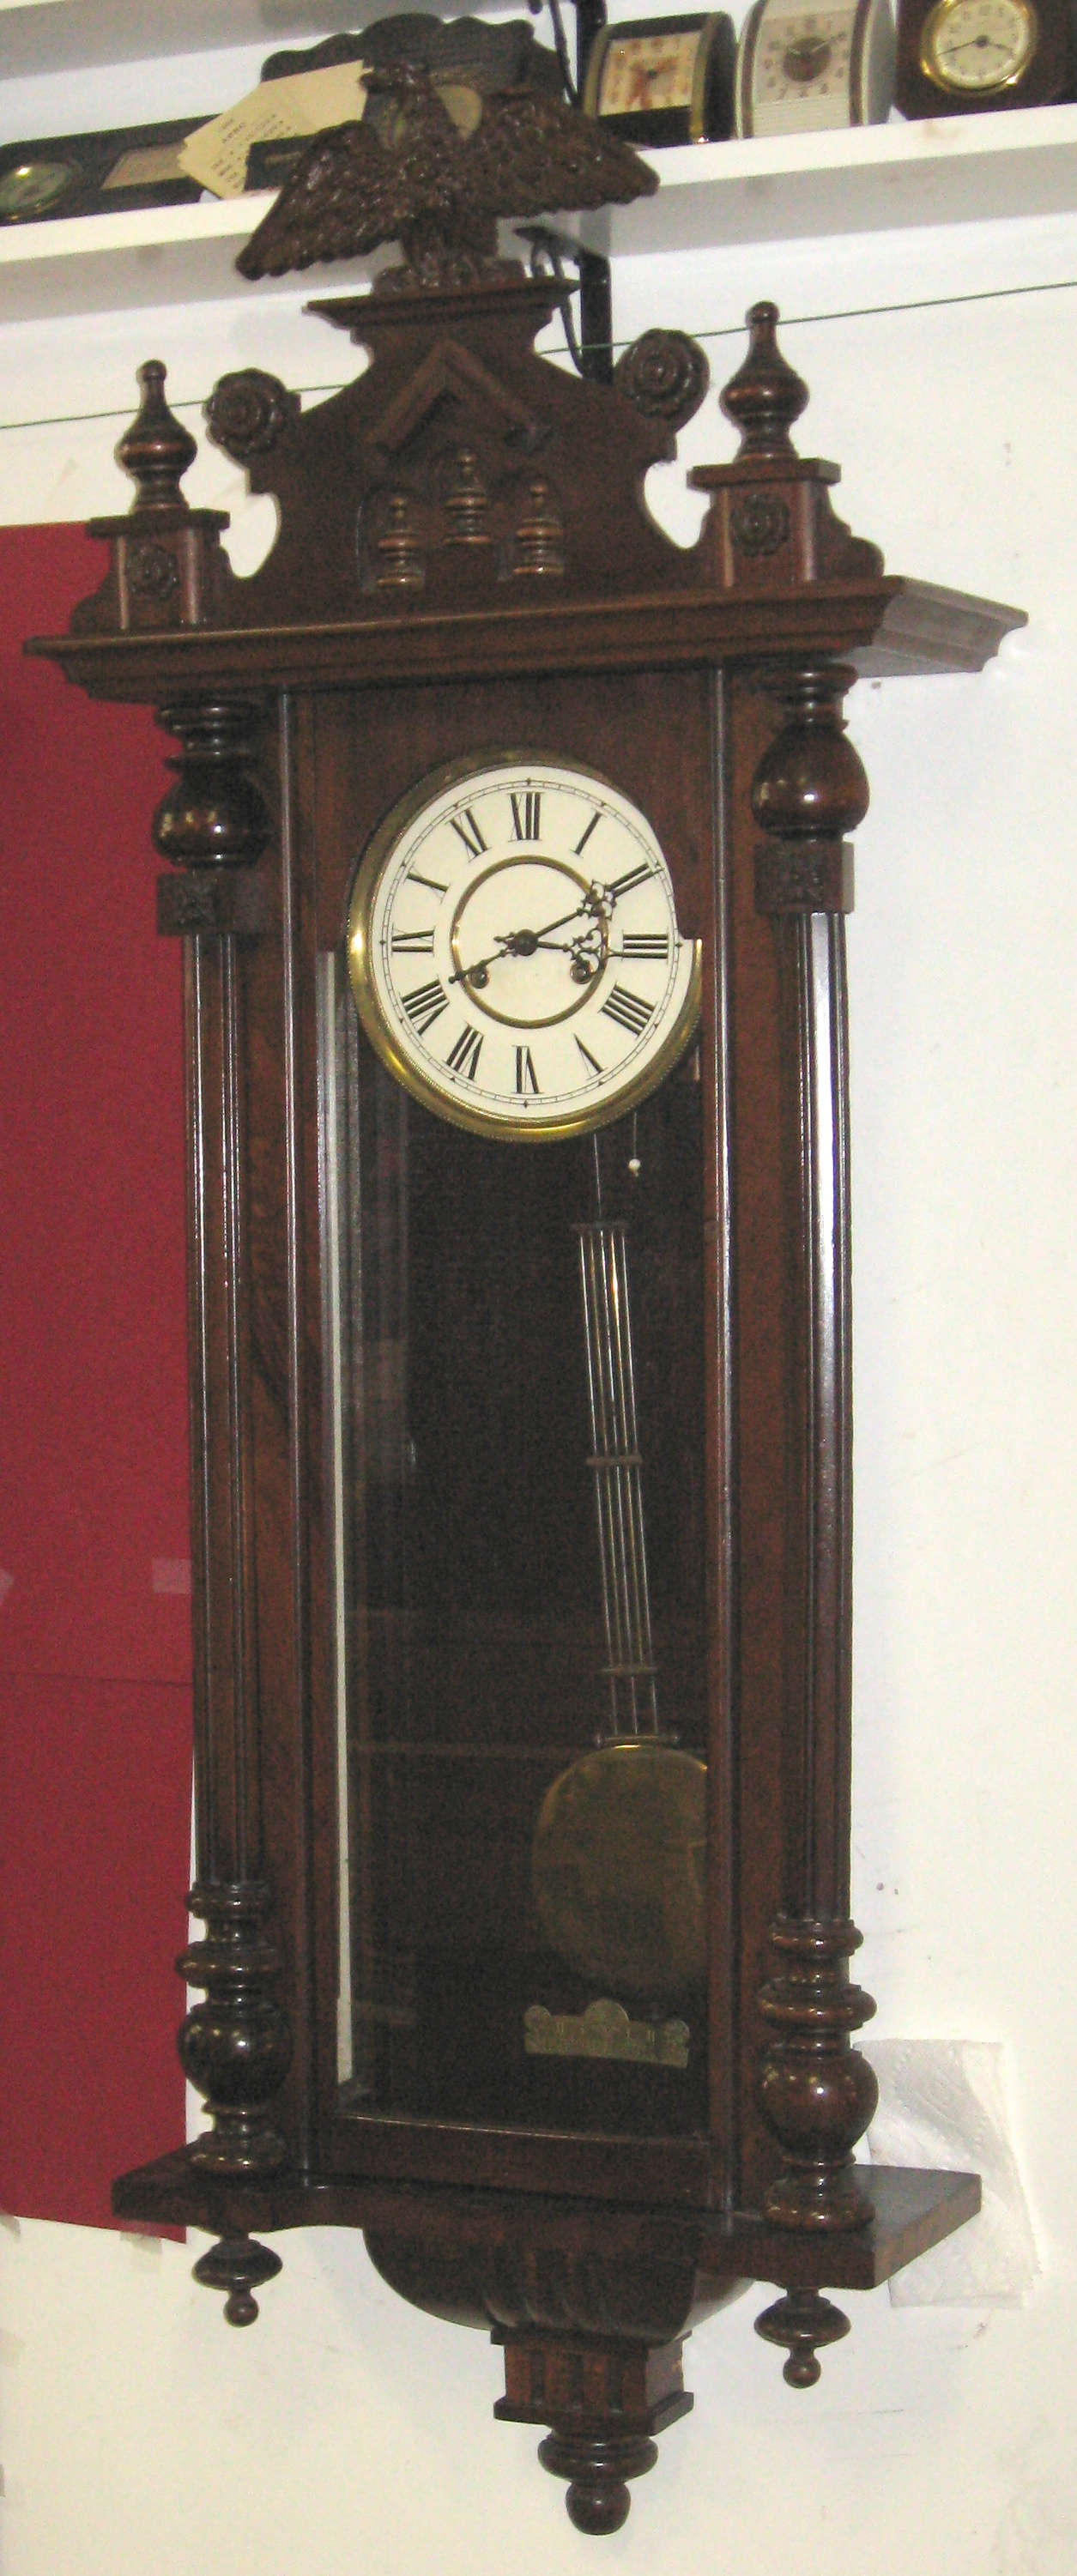 German Wall Clock With Eagle On Top Clockinfo Com